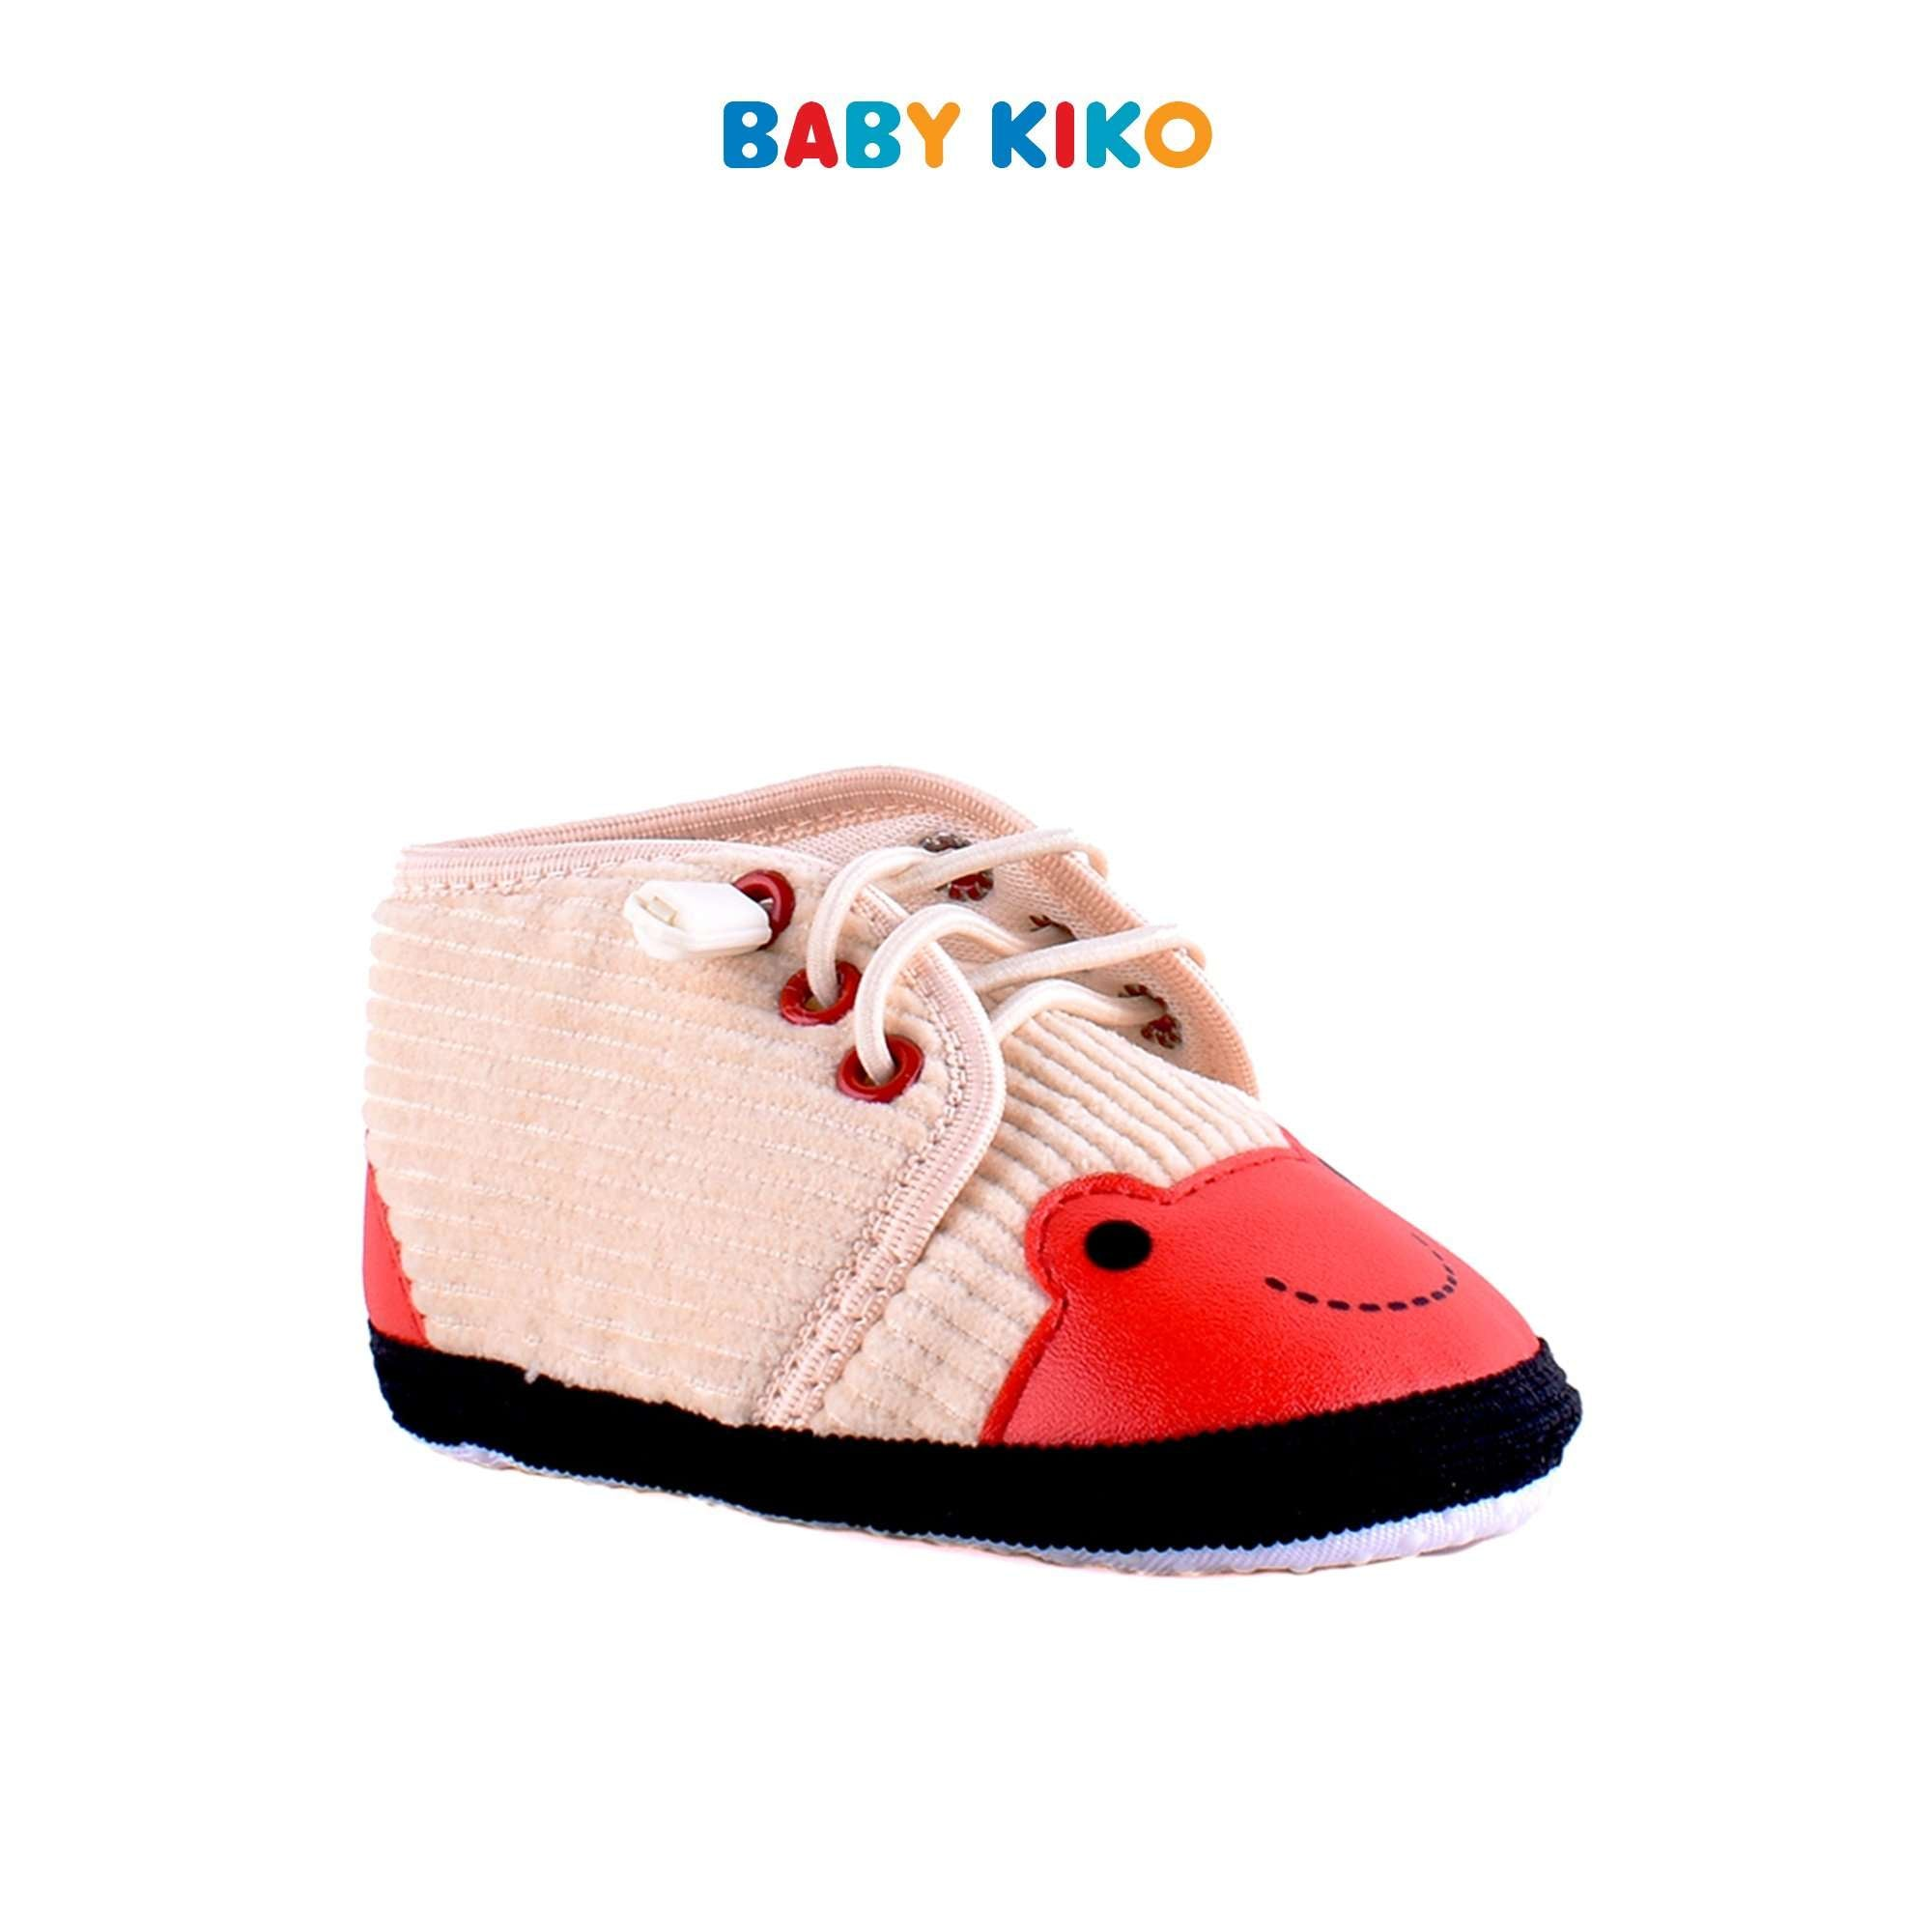 Baby KIKO Baby Boy Textile Shoes - Beige B921106-5082-W9 : Buy Baby KIKO online at CMG.MY